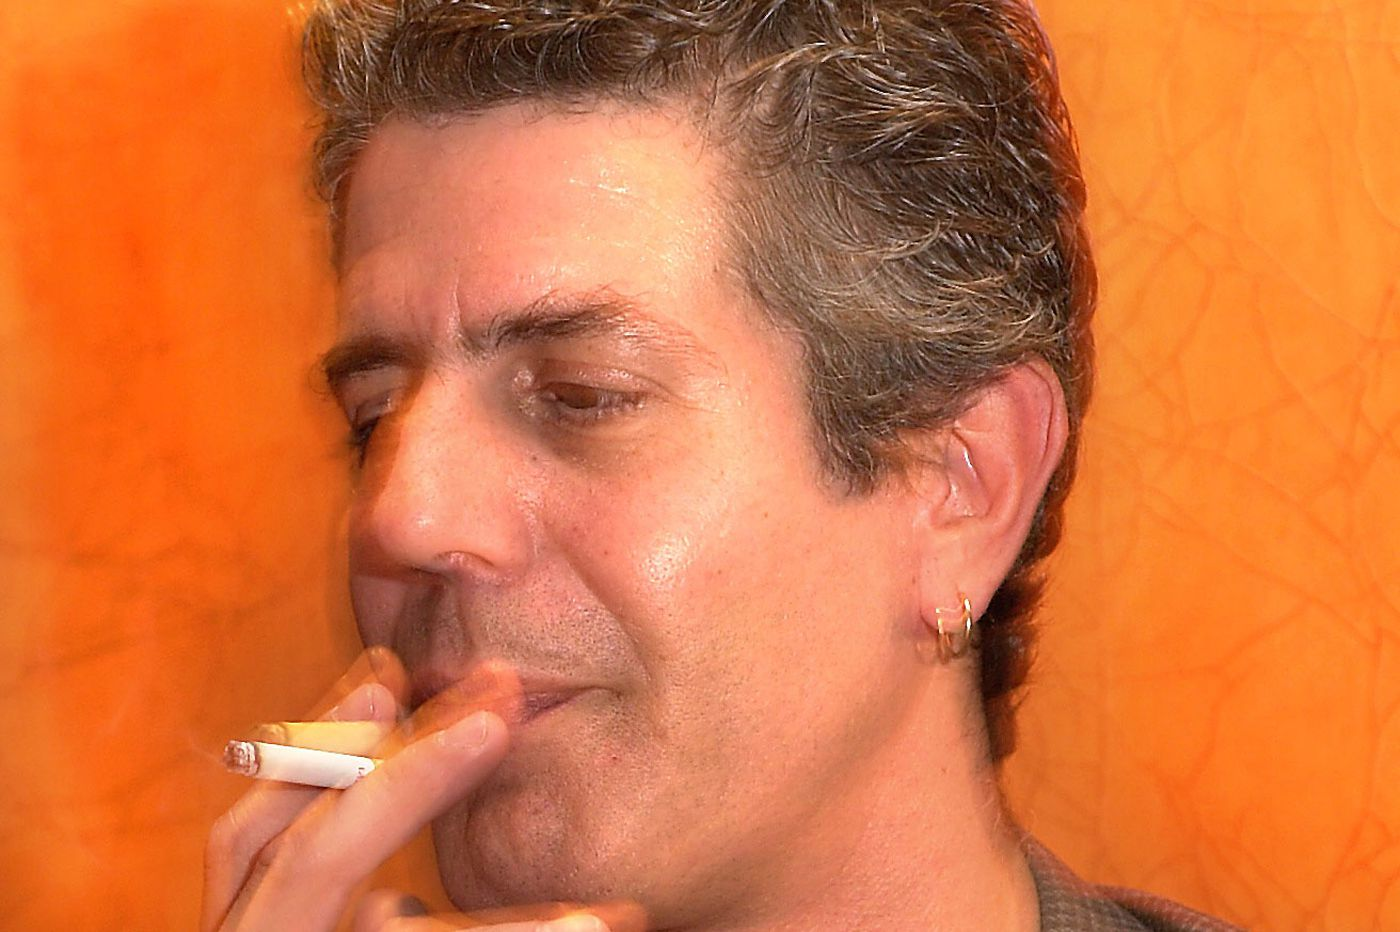 Anthony Bourdain: He didn't set out to be a celebrity